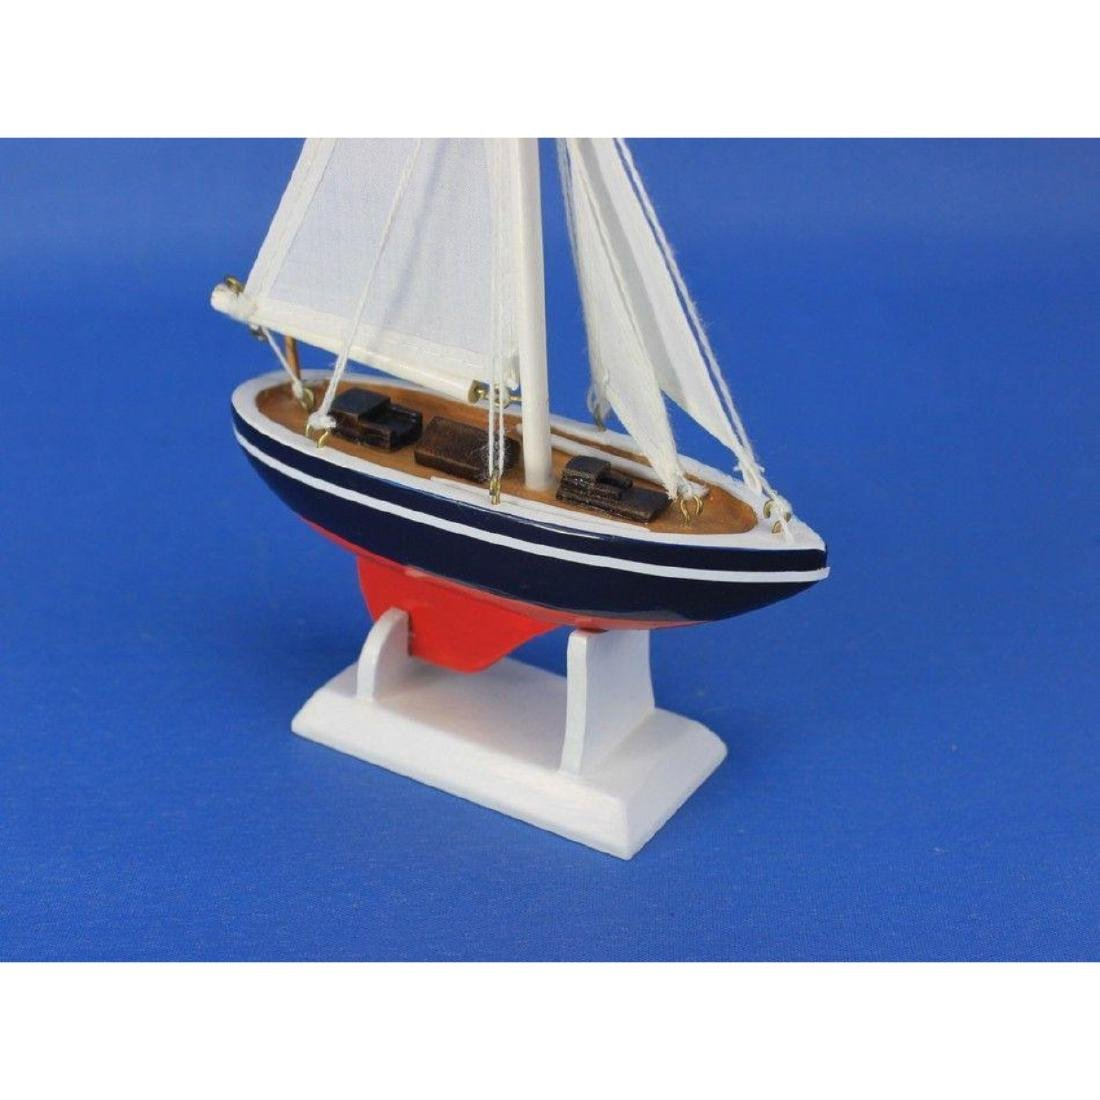 "Wooden American Sailer Model Sailboat Decoration 9"" - 3"